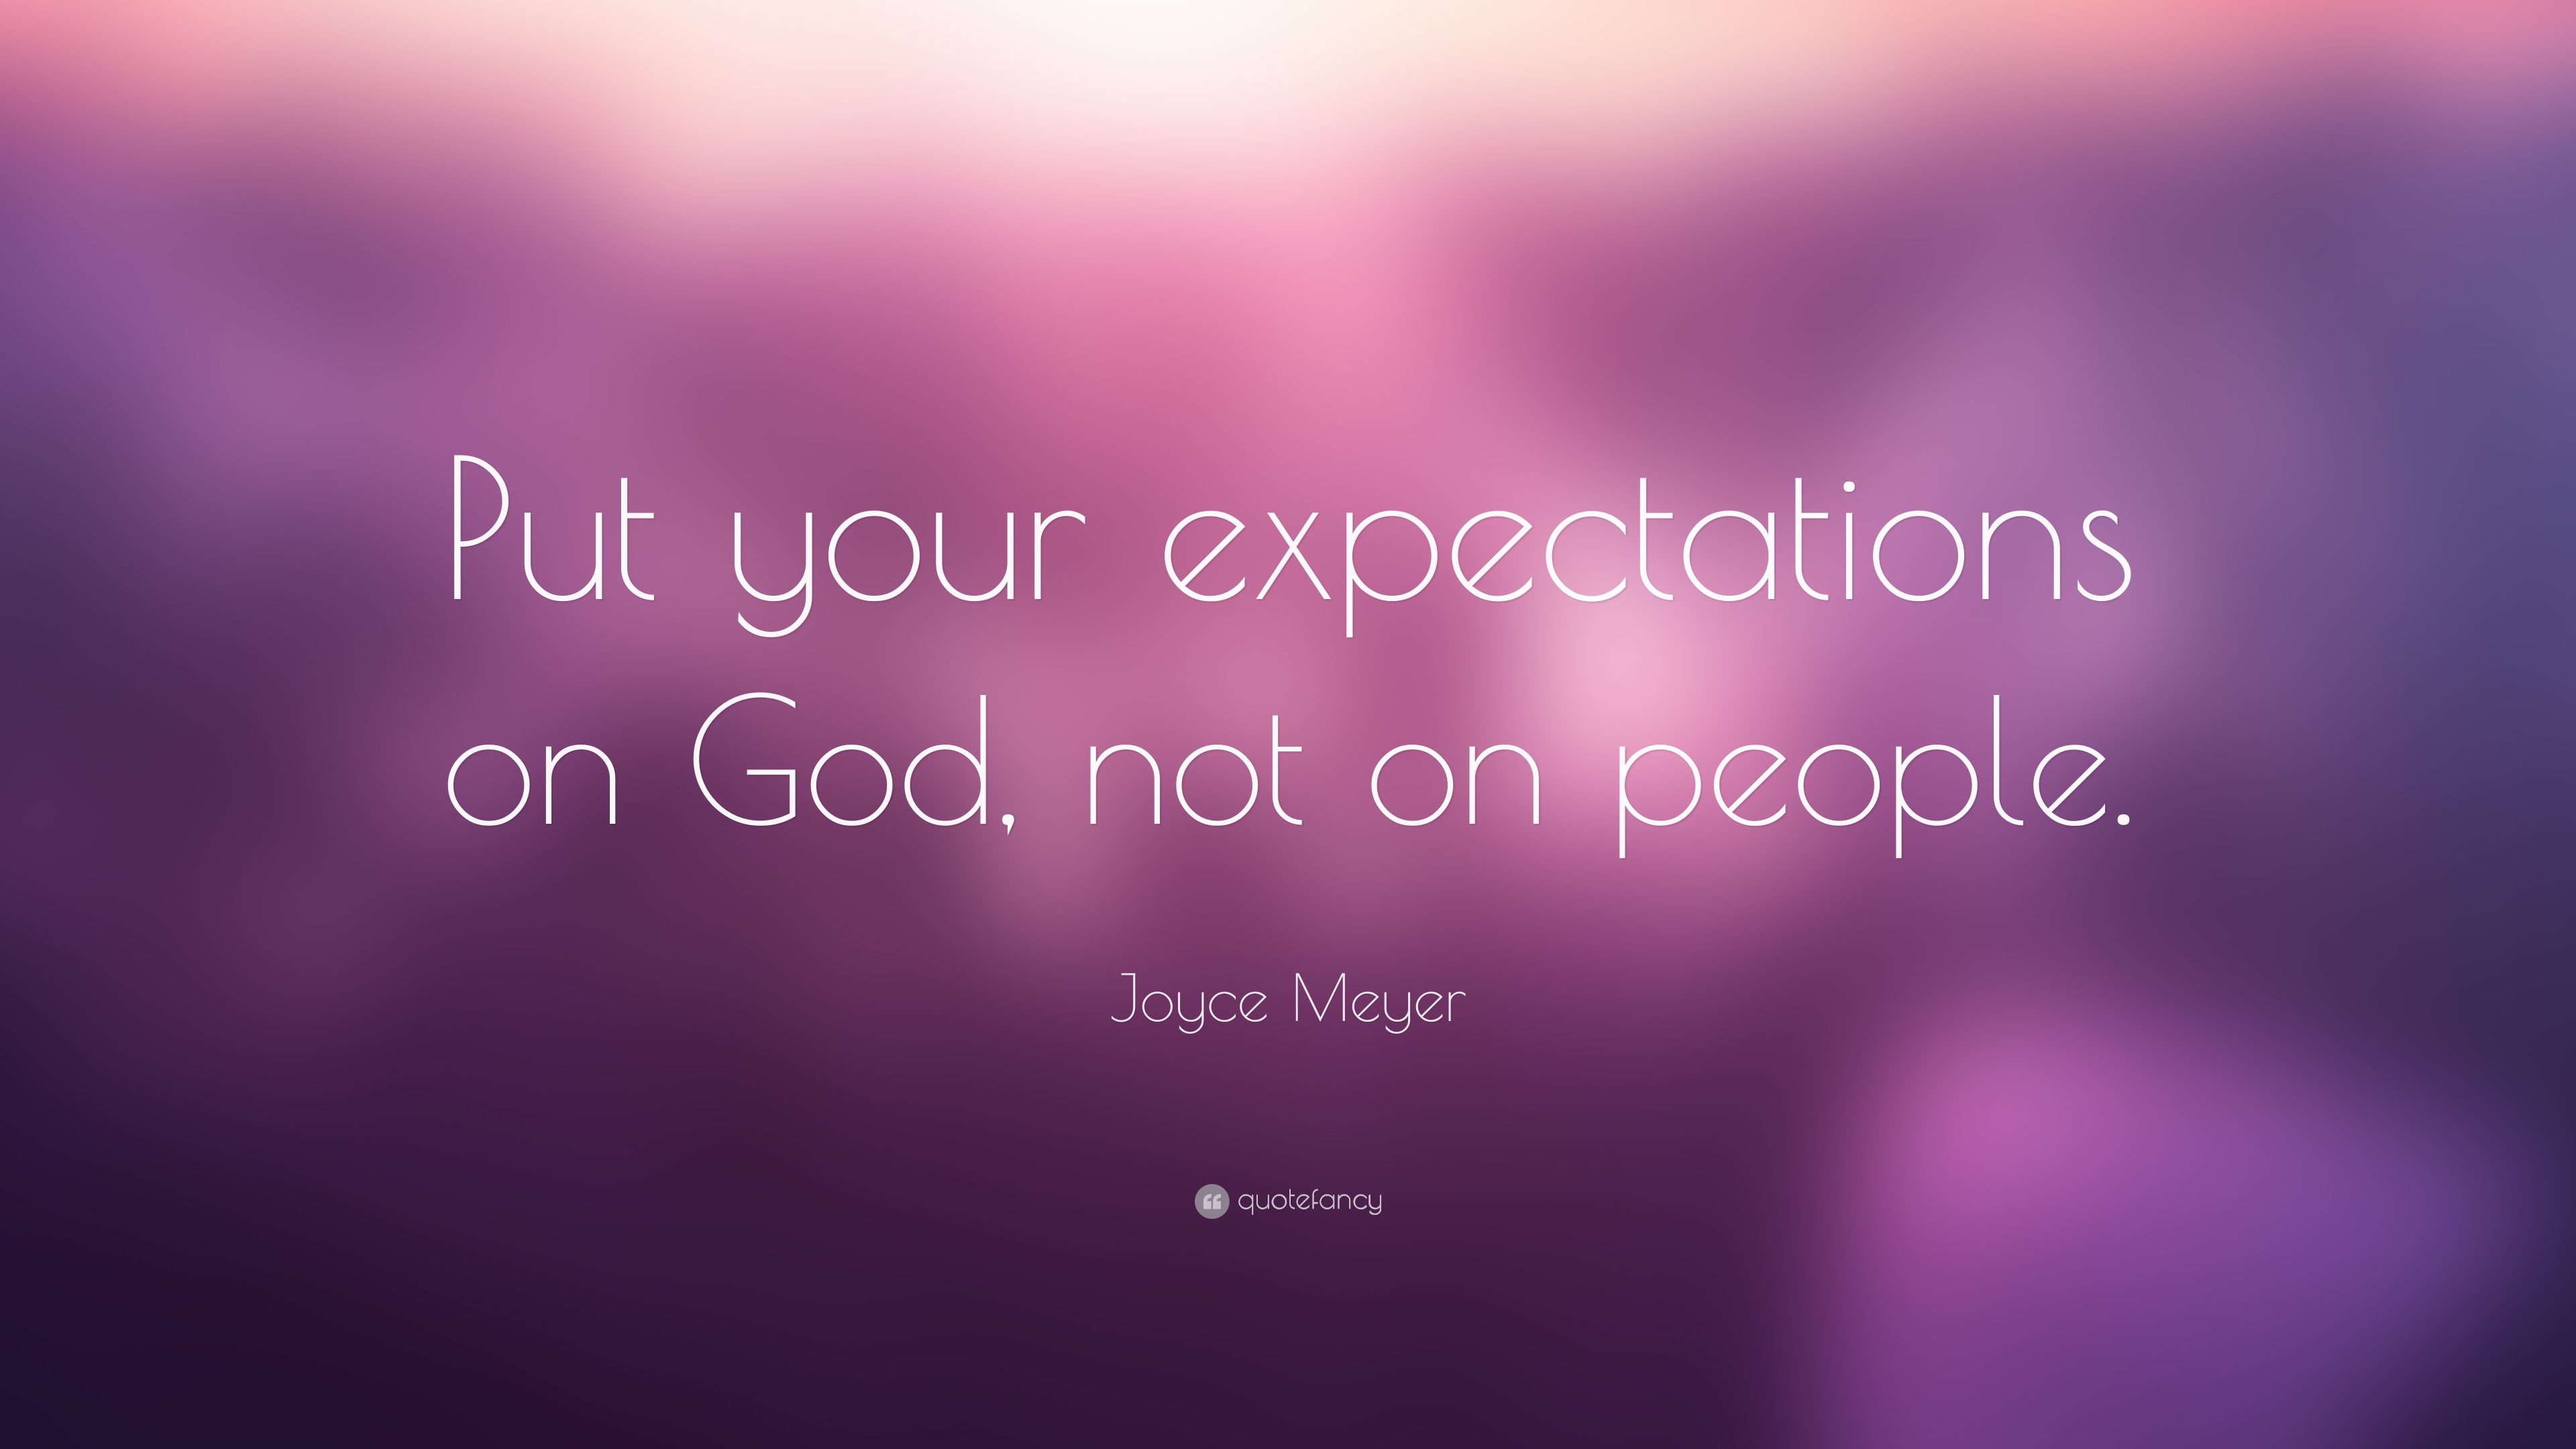 joyce meyer quote put your expectations on god not on people joyce meyer quote put your expectations on god not on people